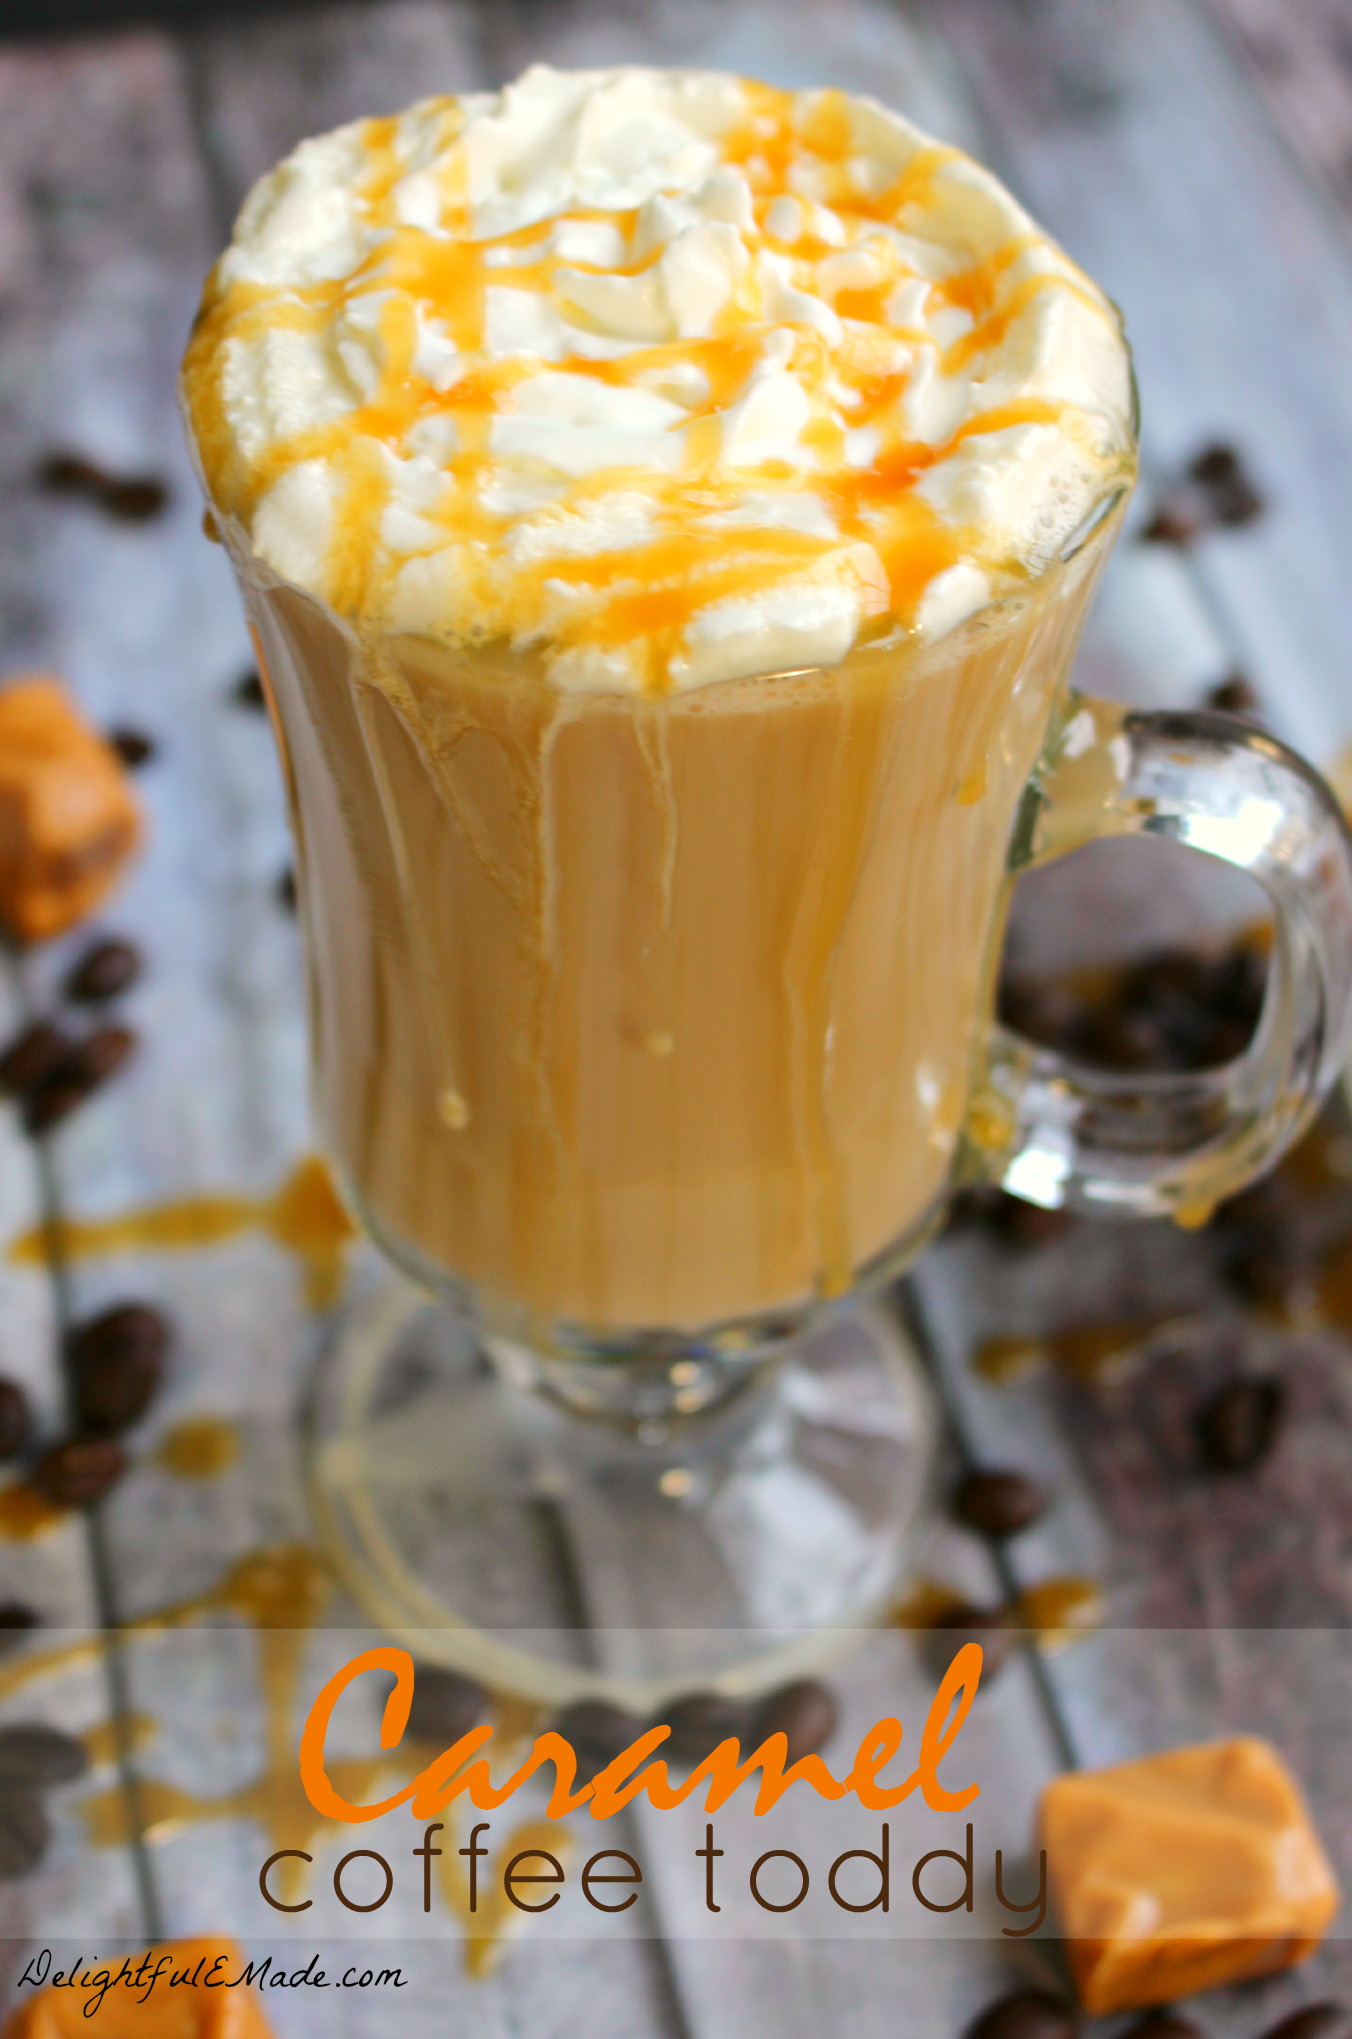 Caramel-Coffee-Toddy-DelightfulEMade.com-vert3 wtxt